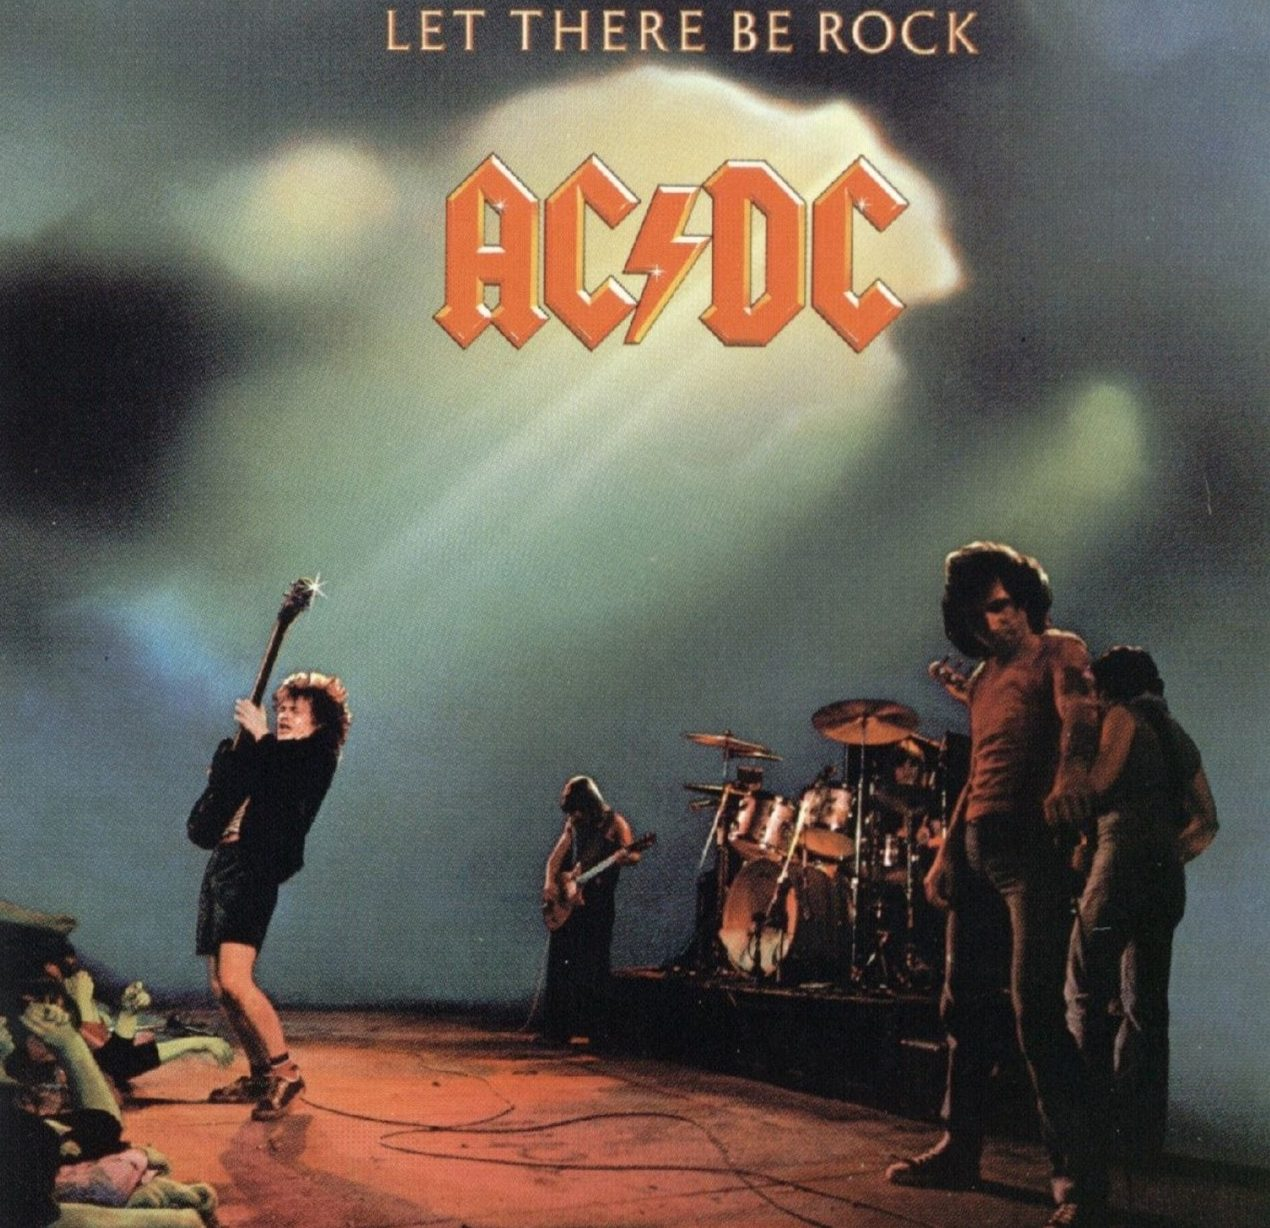 3f1c3d9c aa08 45d9 9276 eb8f1a1b6e72 e1616594865555 20 Things You Never Knew About AC/DC